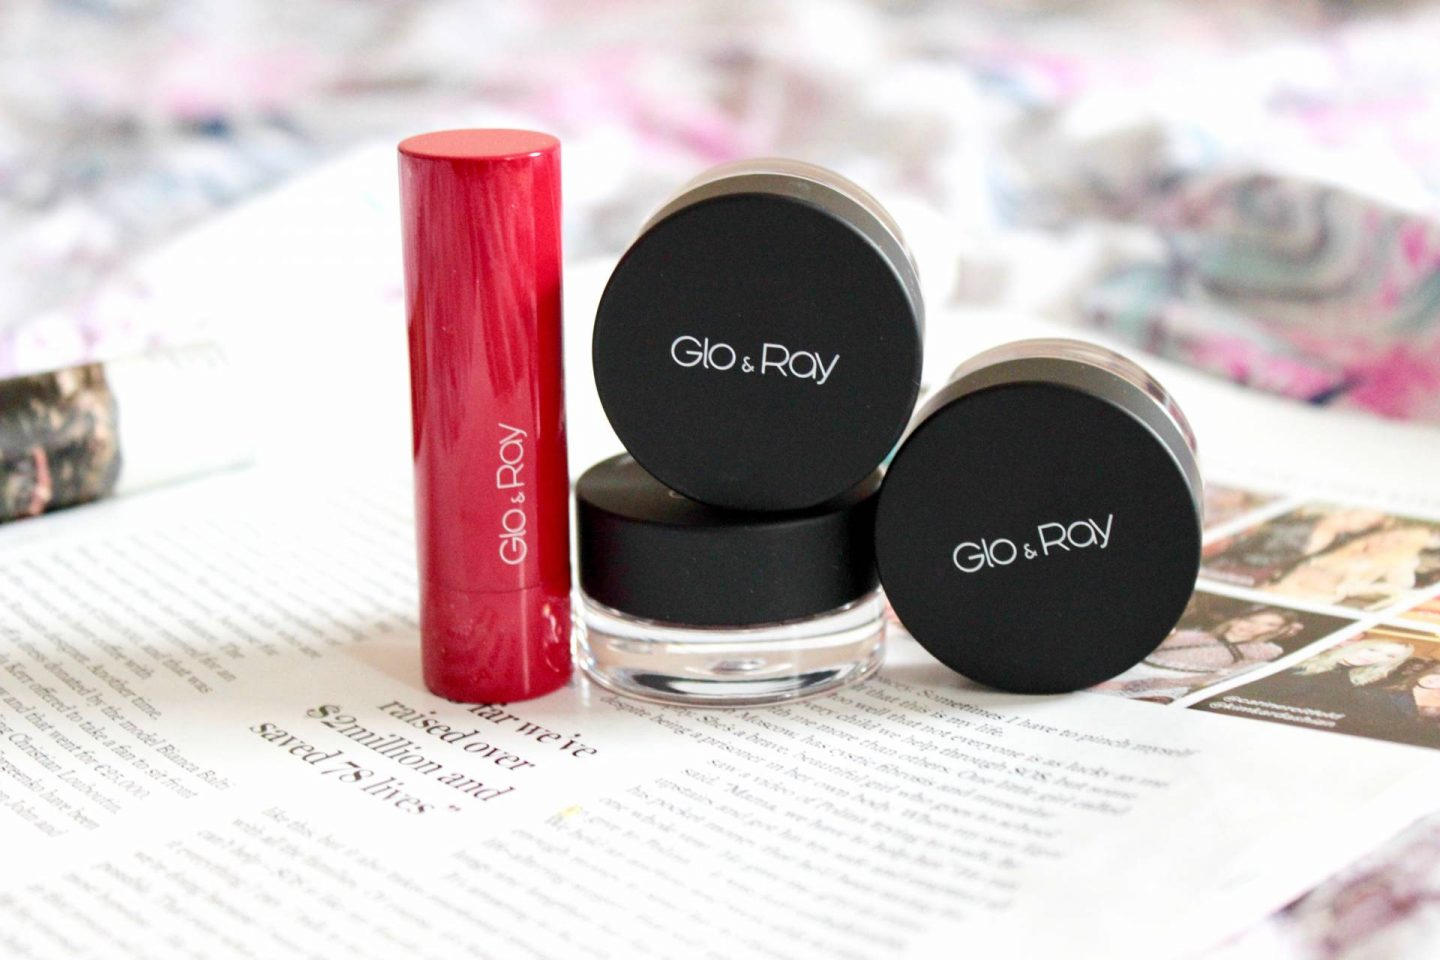 Glo & Ray new makeup products